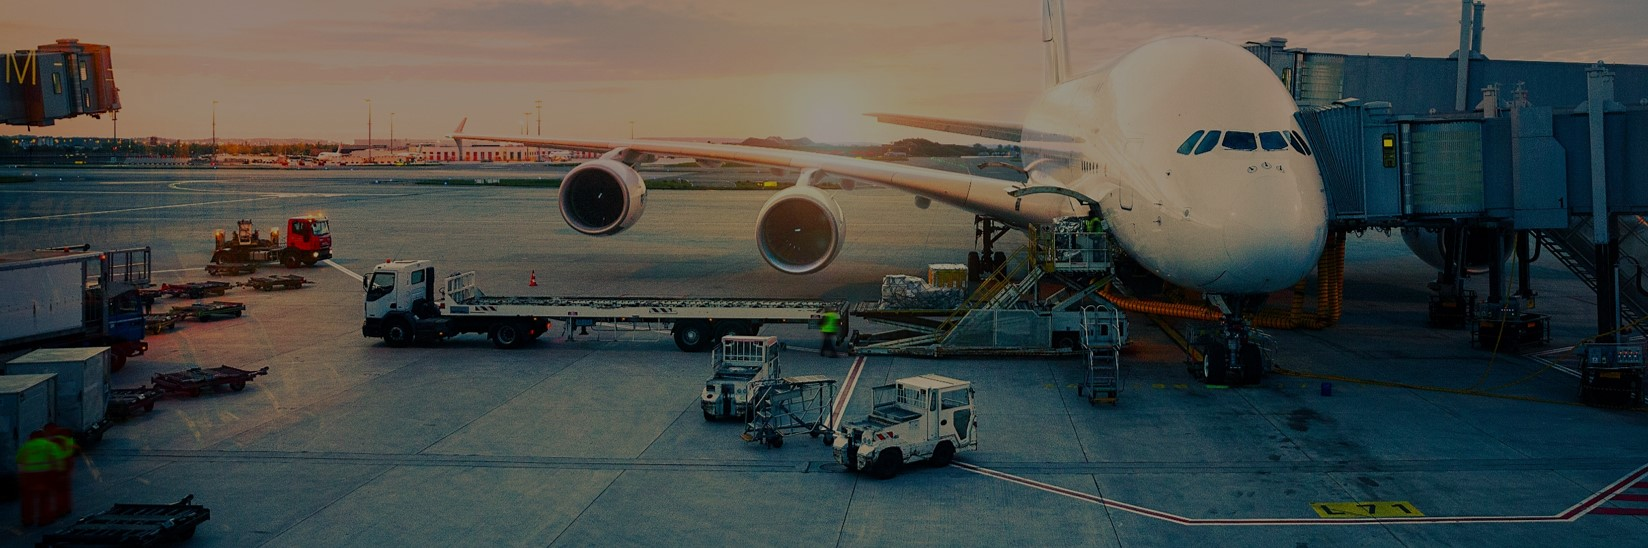 Trade Sanctions and Export Risk Mitigation for Air Cargo